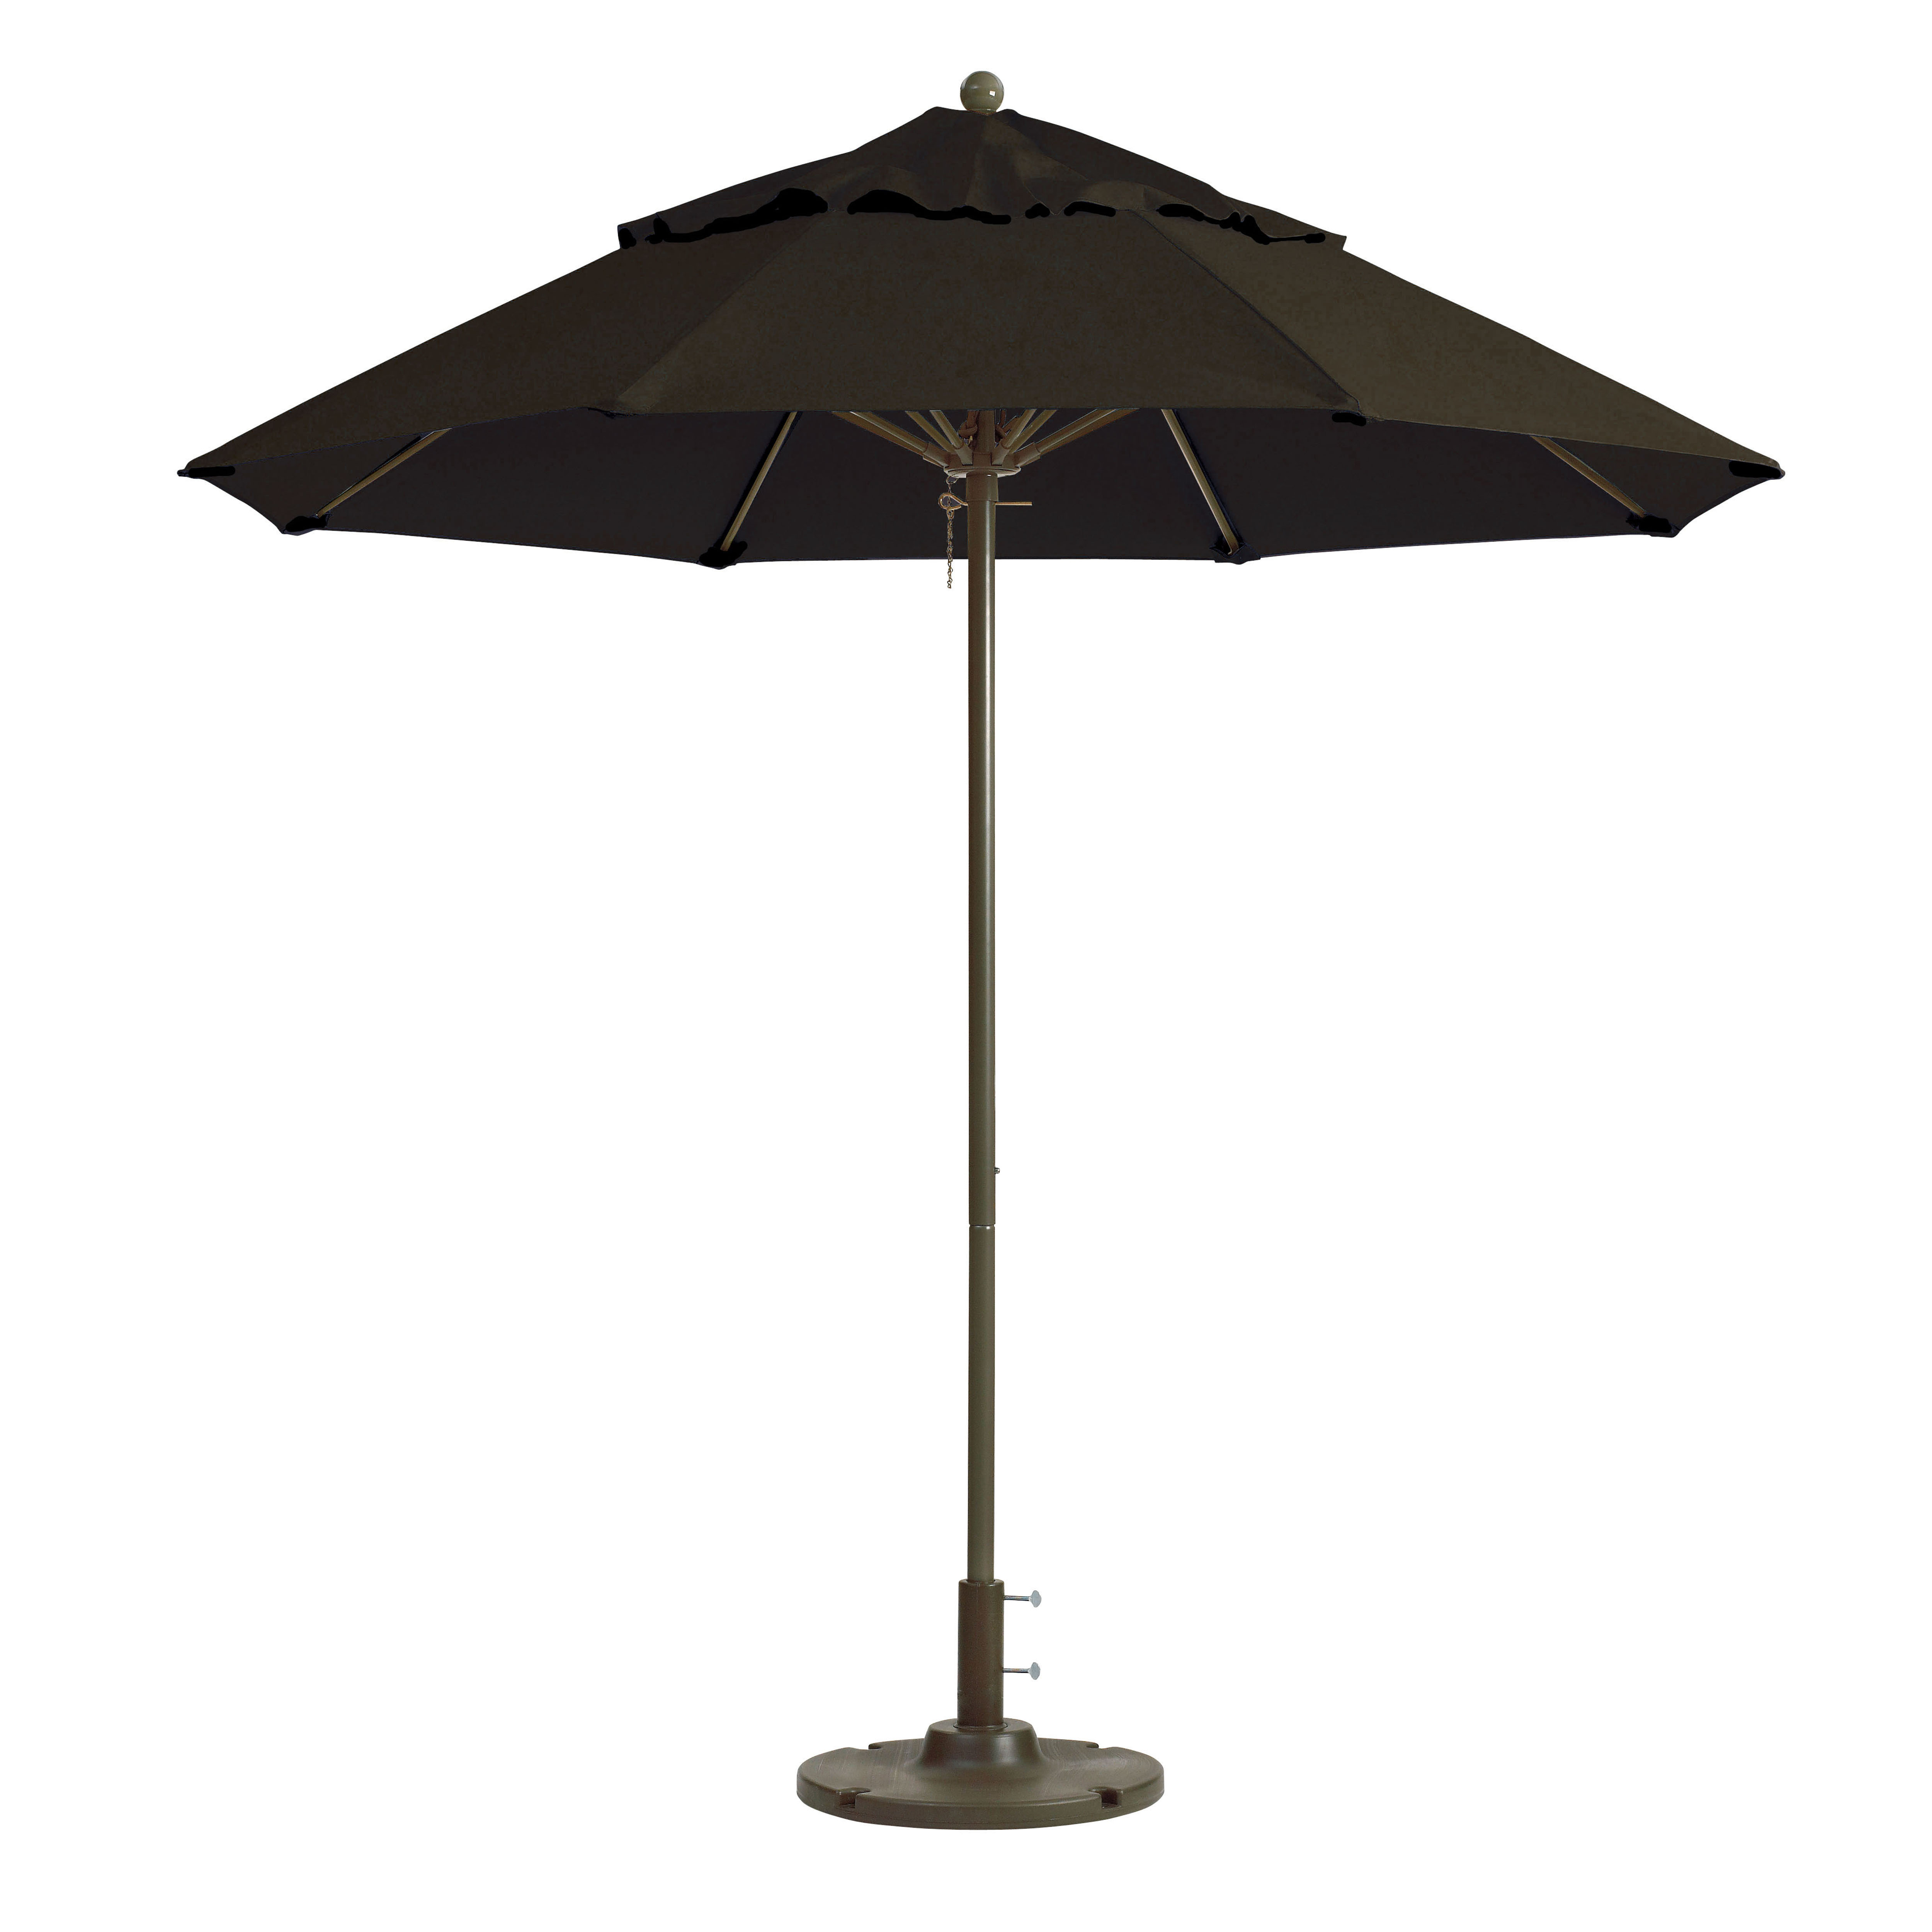 Grosfillex 98300231 umbrella